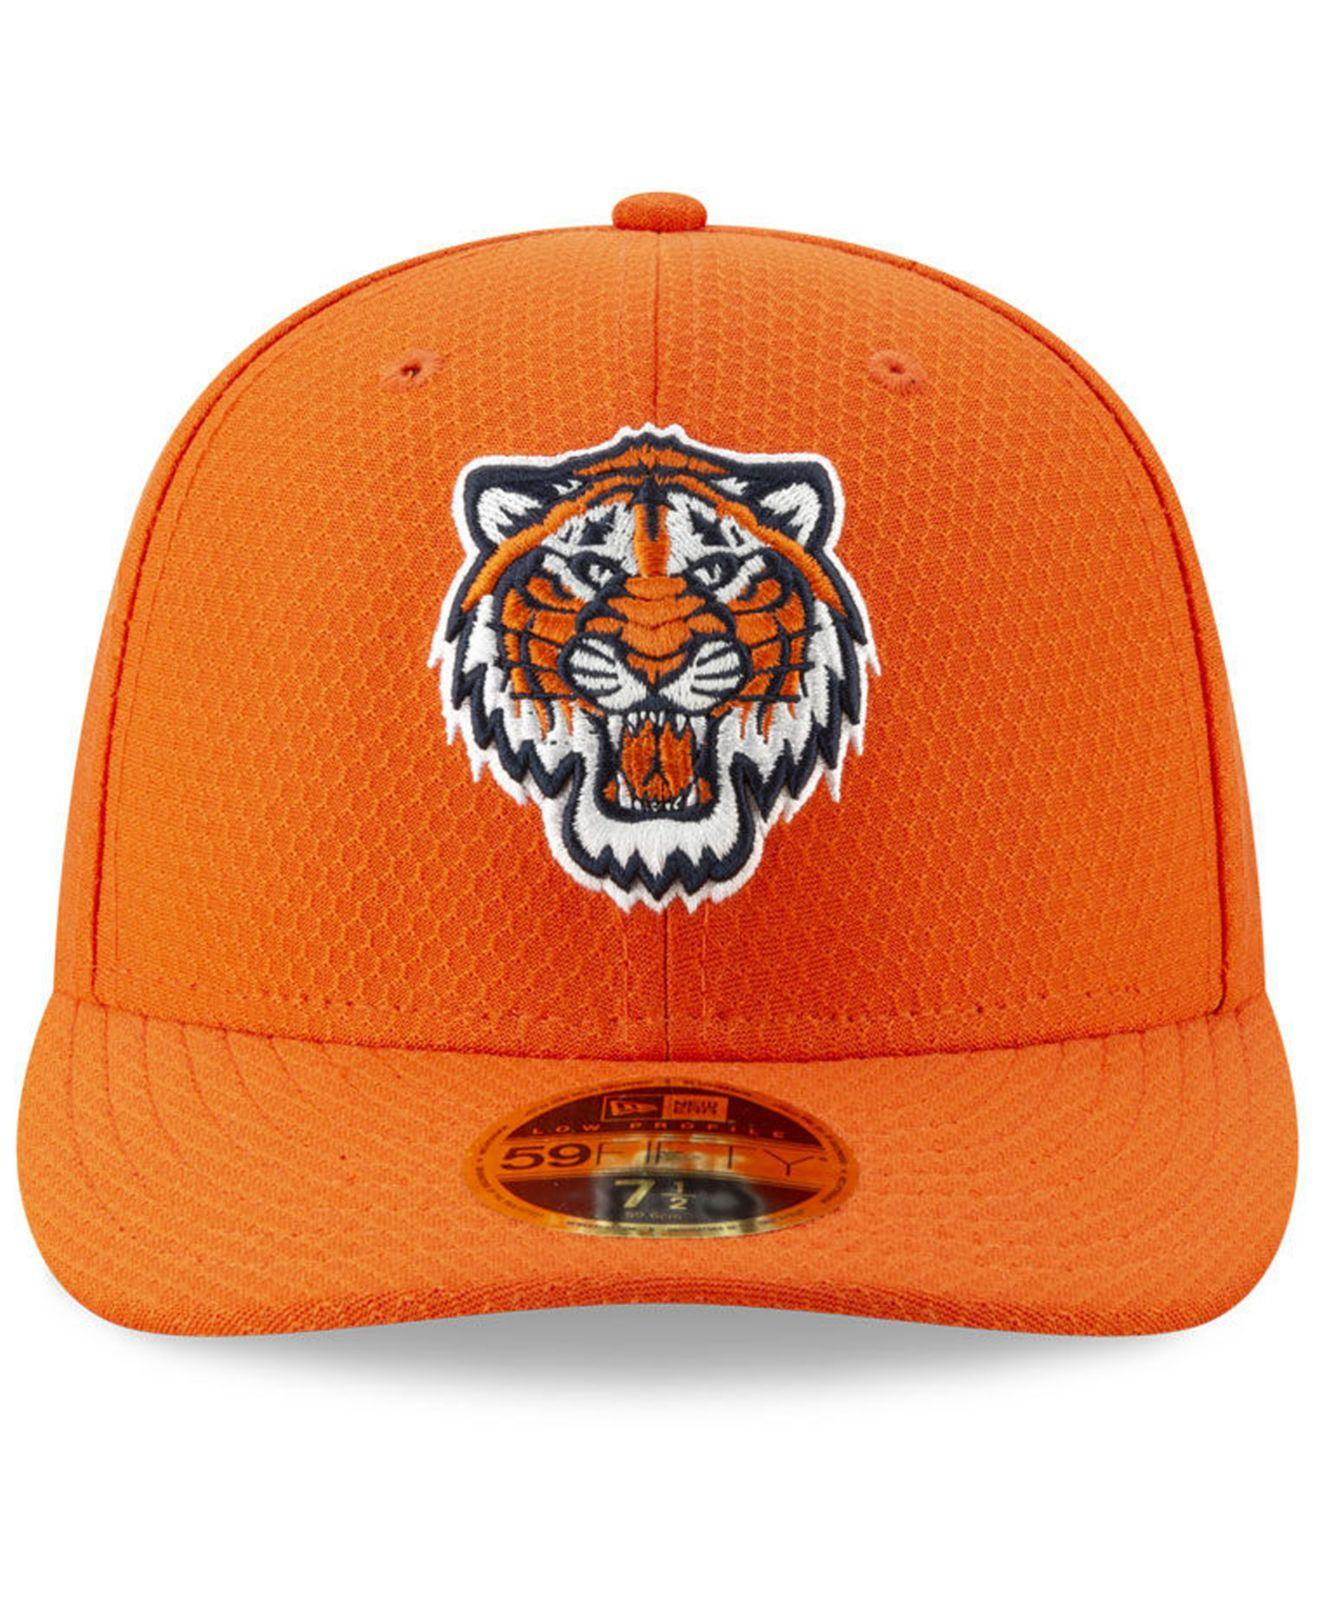 quality design 1d773 297a5 Lyst - KTZ Detroit Tigers Spring Training 59fifty-fitted Low Profile Cap in  Orange for Men